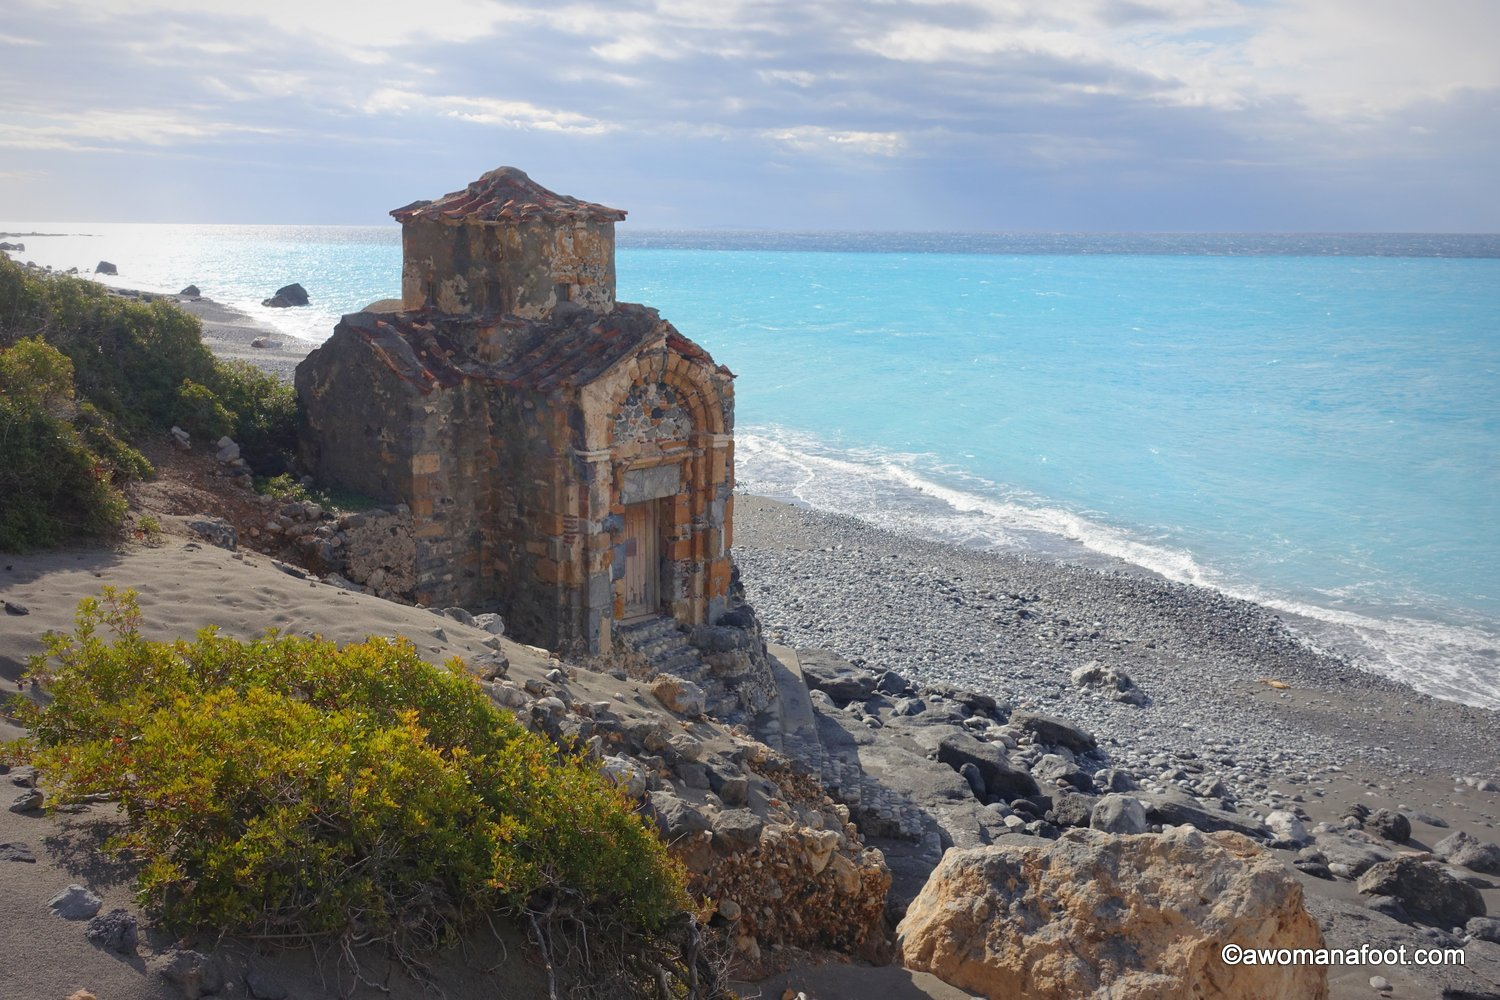 Four more days of solo hiking along the E4 trail on Crete, Greece. Fantastic views, horrible weather and hard decisions to be made. | Female solo hiking | Hiking on Crete | Great European Trails | Greek Adventure | #Hiking #Crete #E4trail #FemaleSoloHiking | Awomanafoot.com